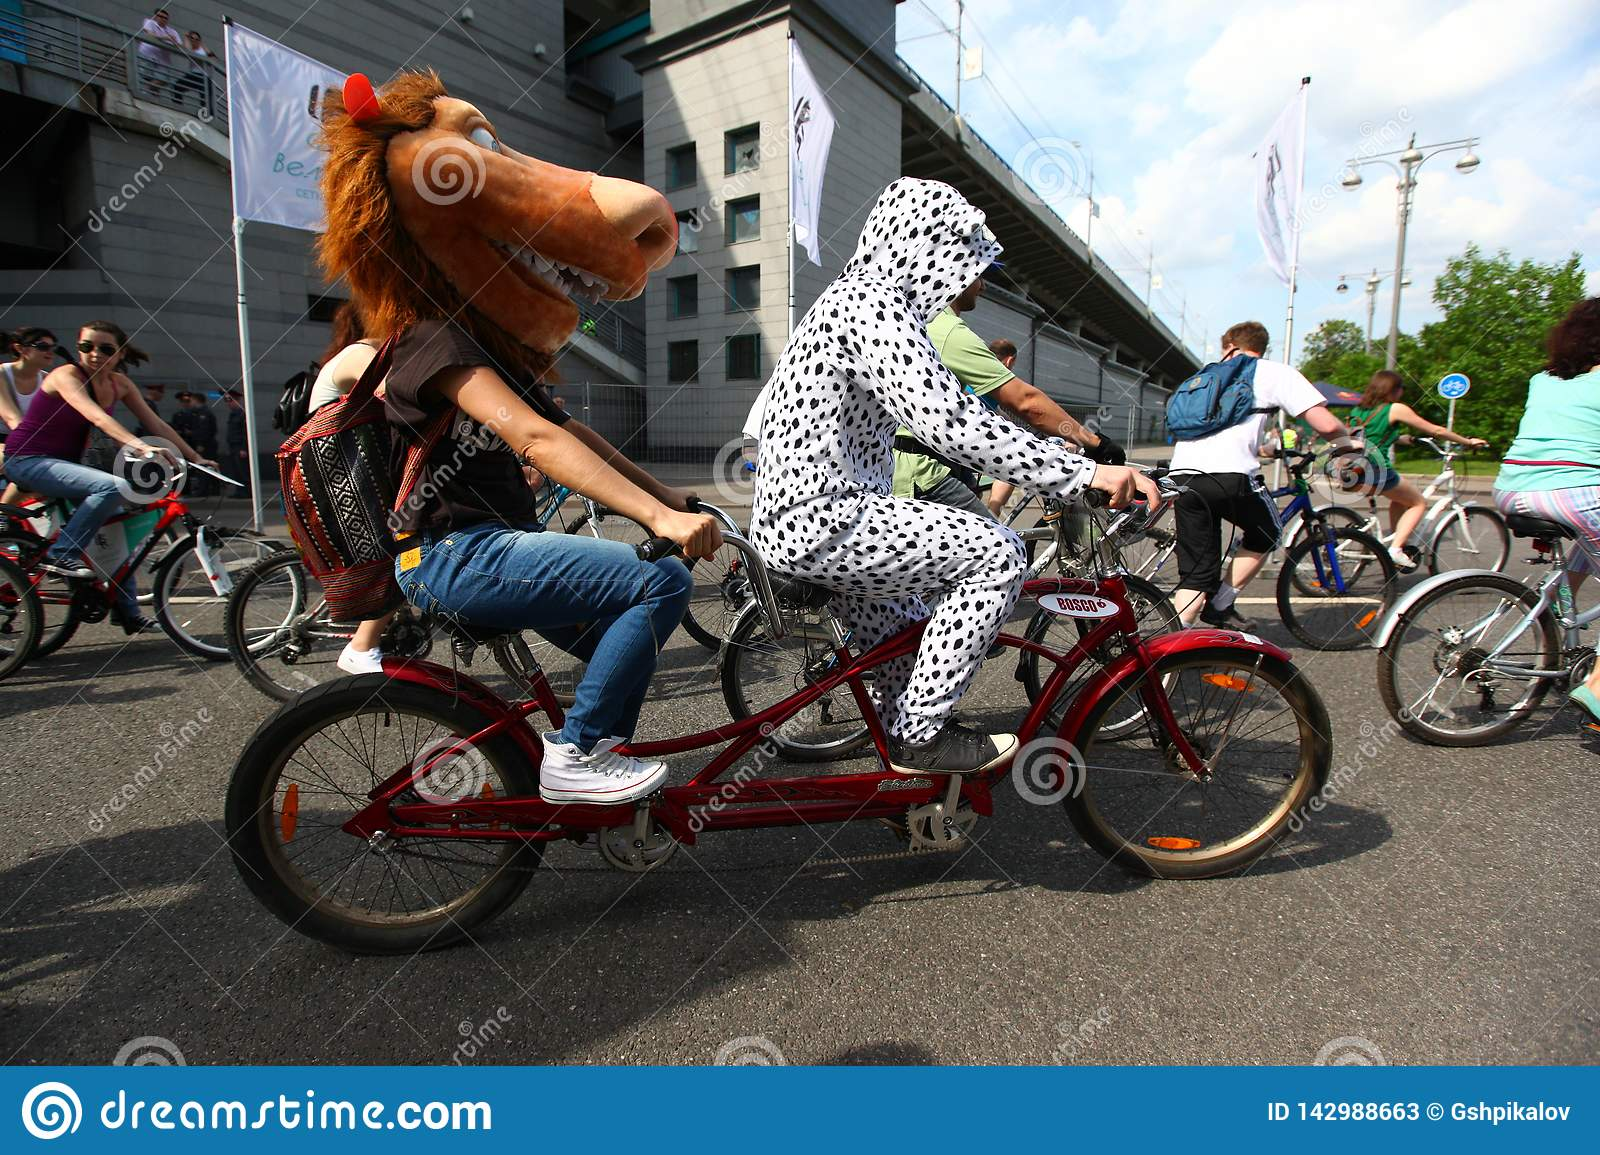 MOSCOW, RUSSIA - 20 May 2002: City cycling parade, horse and dalmation costumed participants on a tandem bike